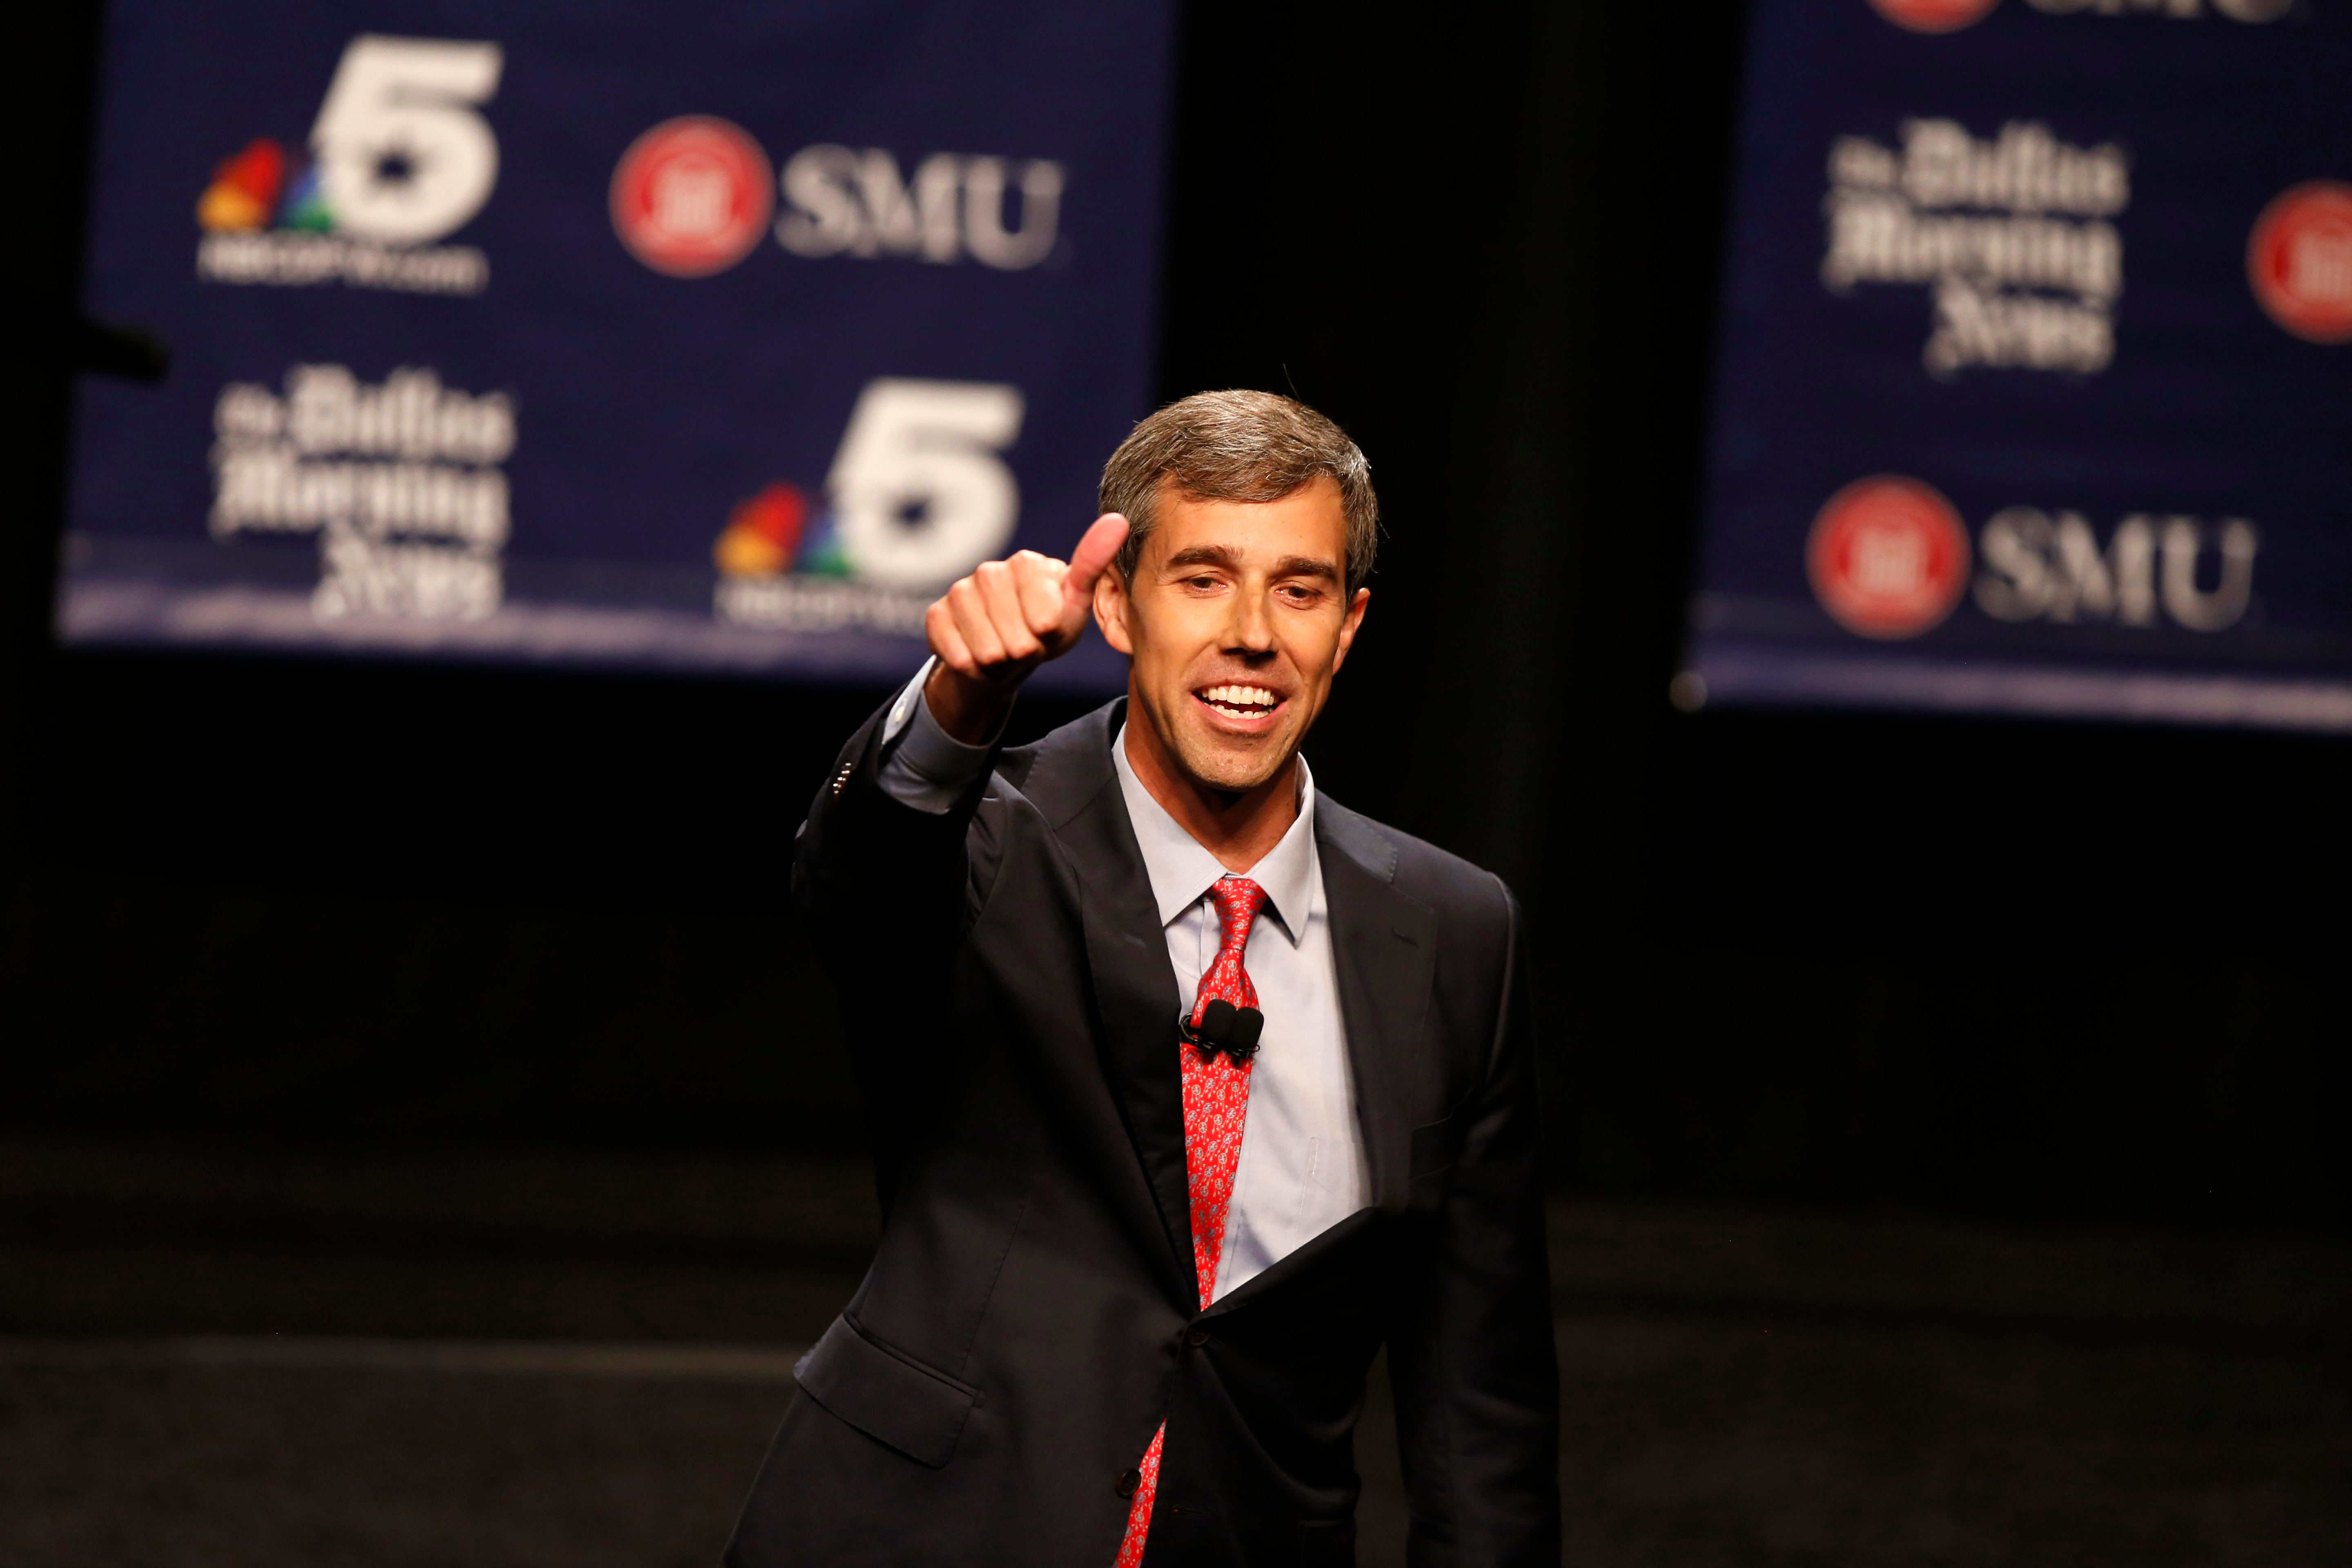 See Beto O'Rourke Air-Drum to the Who's 'Baba O'Riley' After Ted Cruz Debate